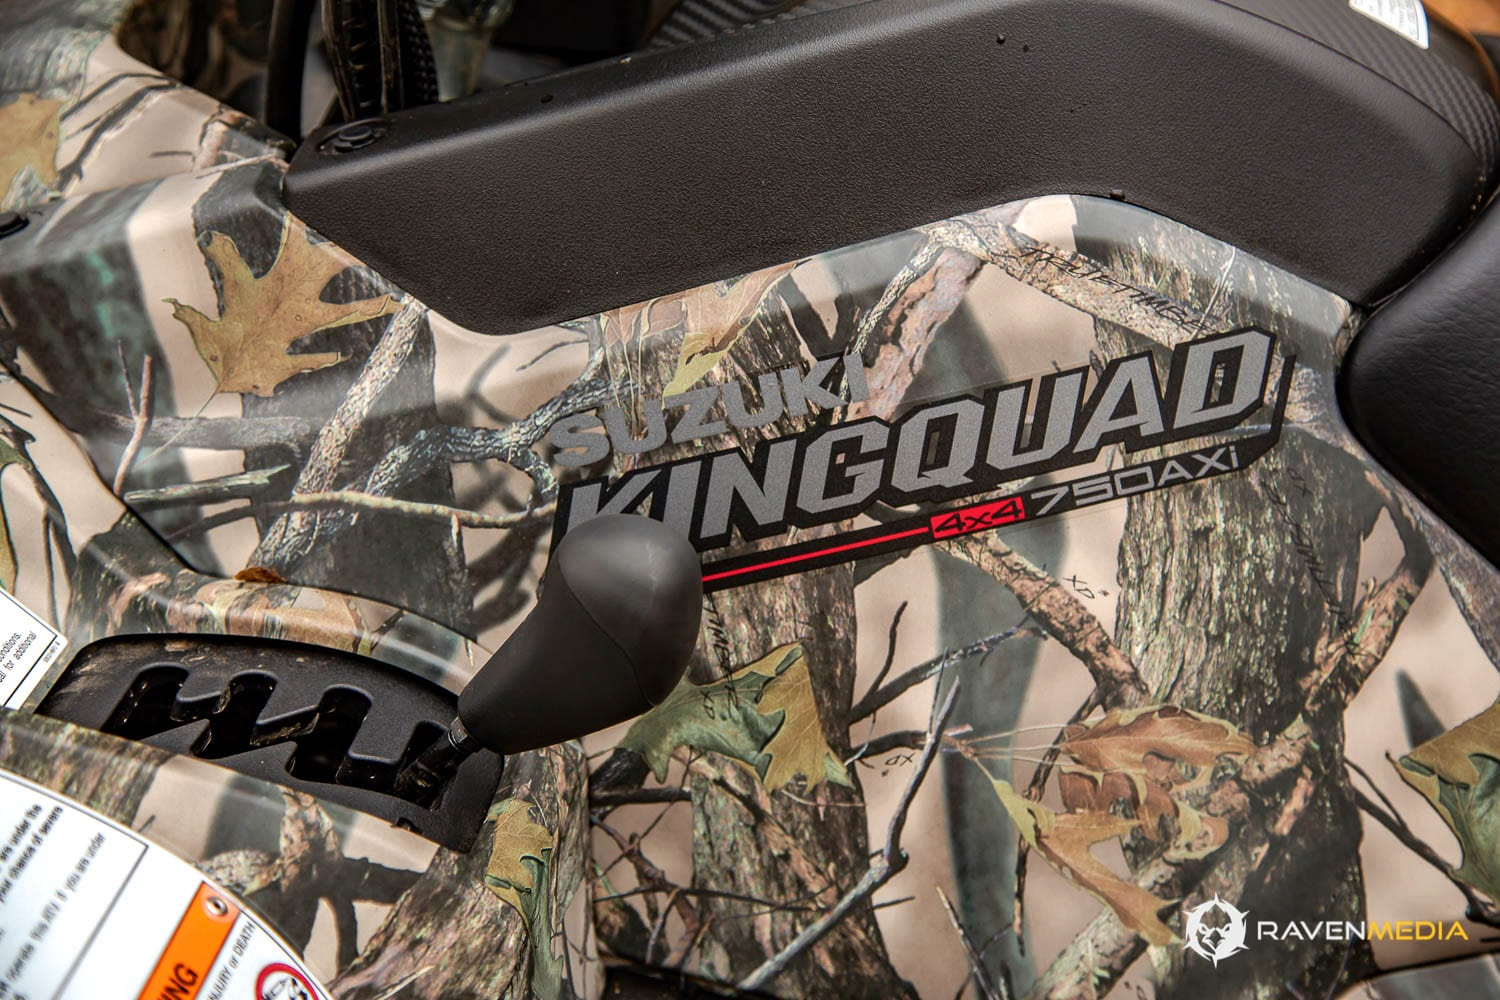 2019 Suzuki KingQuad Review